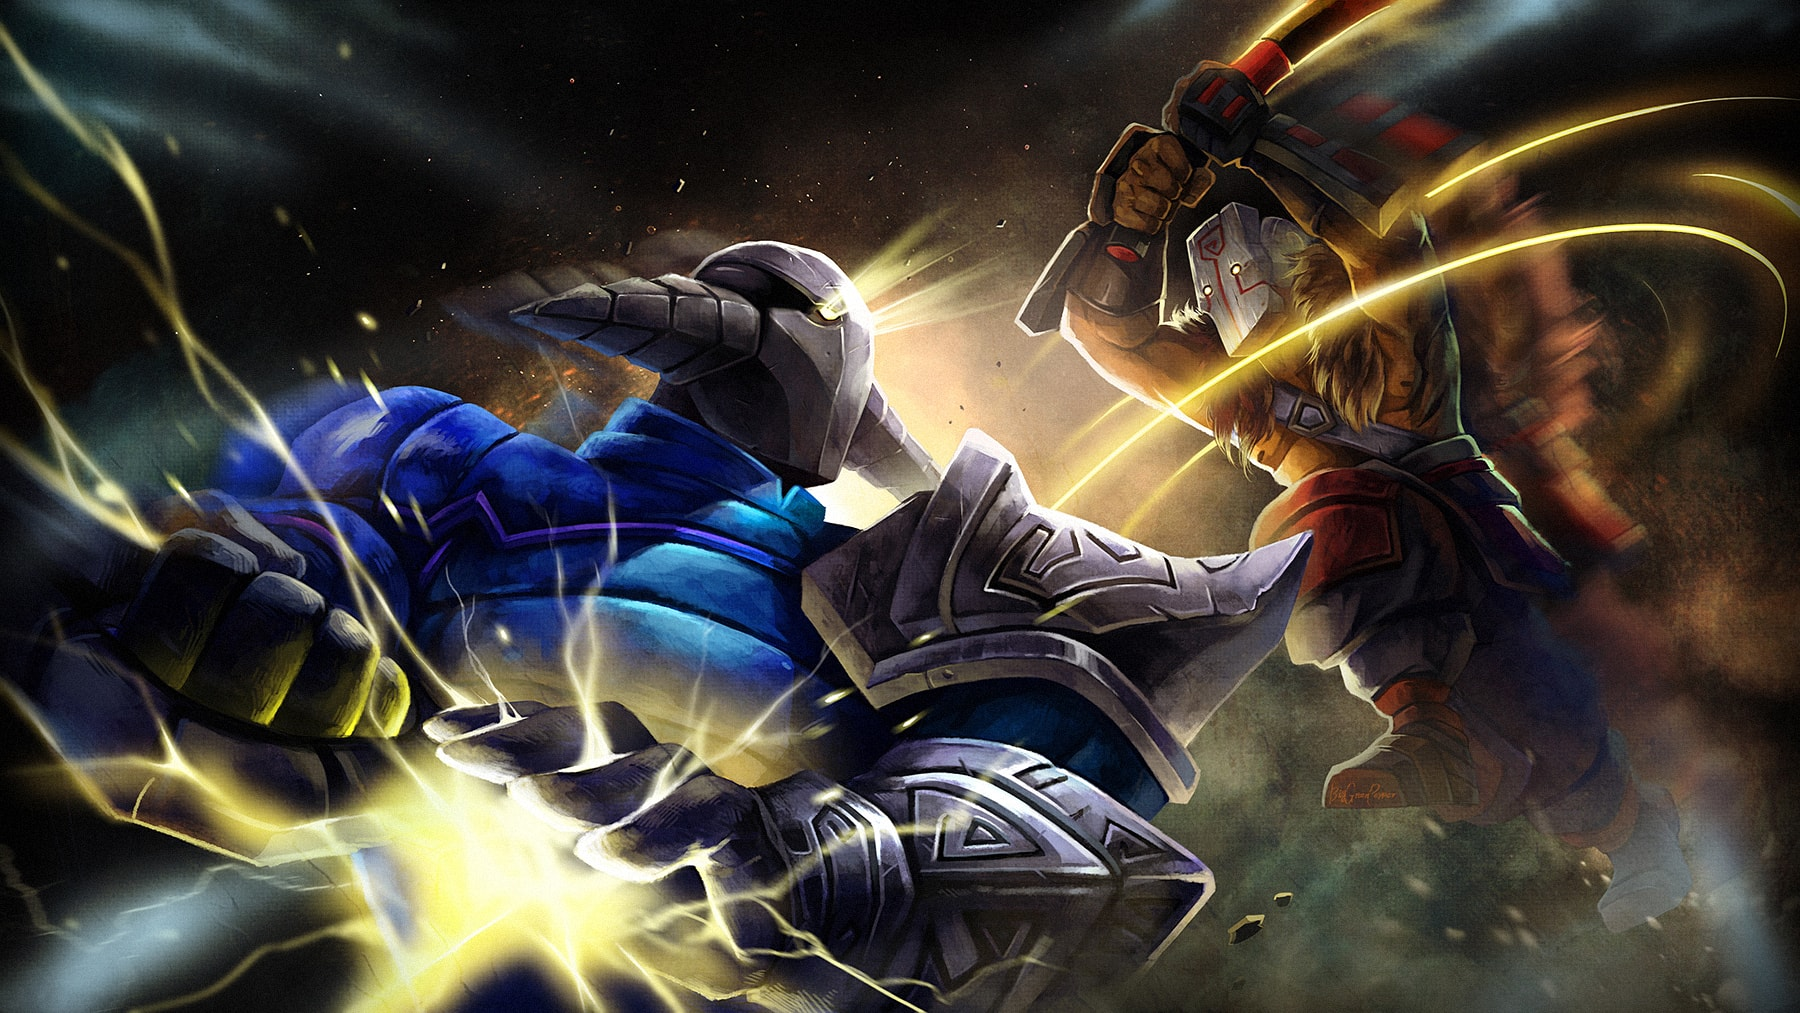 Dota2 : Juggernaut full hd wallpapers